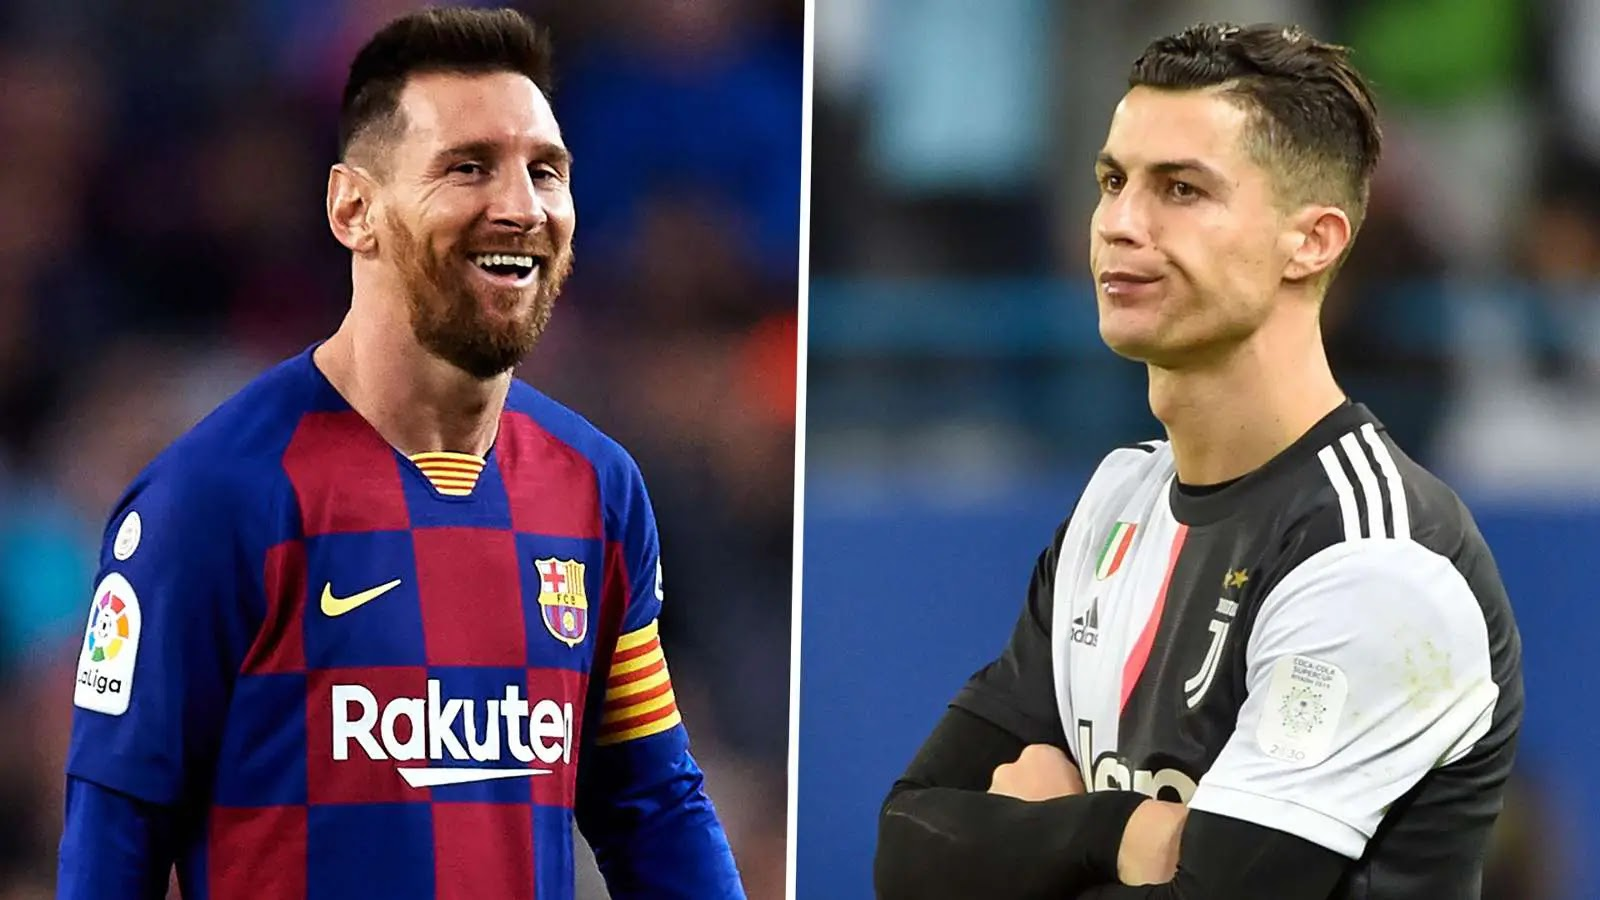 cristiano ronaldo,lionel messi,ronaldo,messi,messi vs ronaldo,ronaldo vs messi,ronaldo & messi,hazard about ronaldo or messi,cristiano ronaldo vs lionel messi,ronaldo vs messi vs neymar vs mbappe,messi vs ronaldo vs neymar,messi vs neymar vs ronaldo,best football legend about ronaldo and messi,lionel messi (football player),cristiano ronaldo 2017,football,ronaldo vs. messi,leo messi,ronaldo messi fight